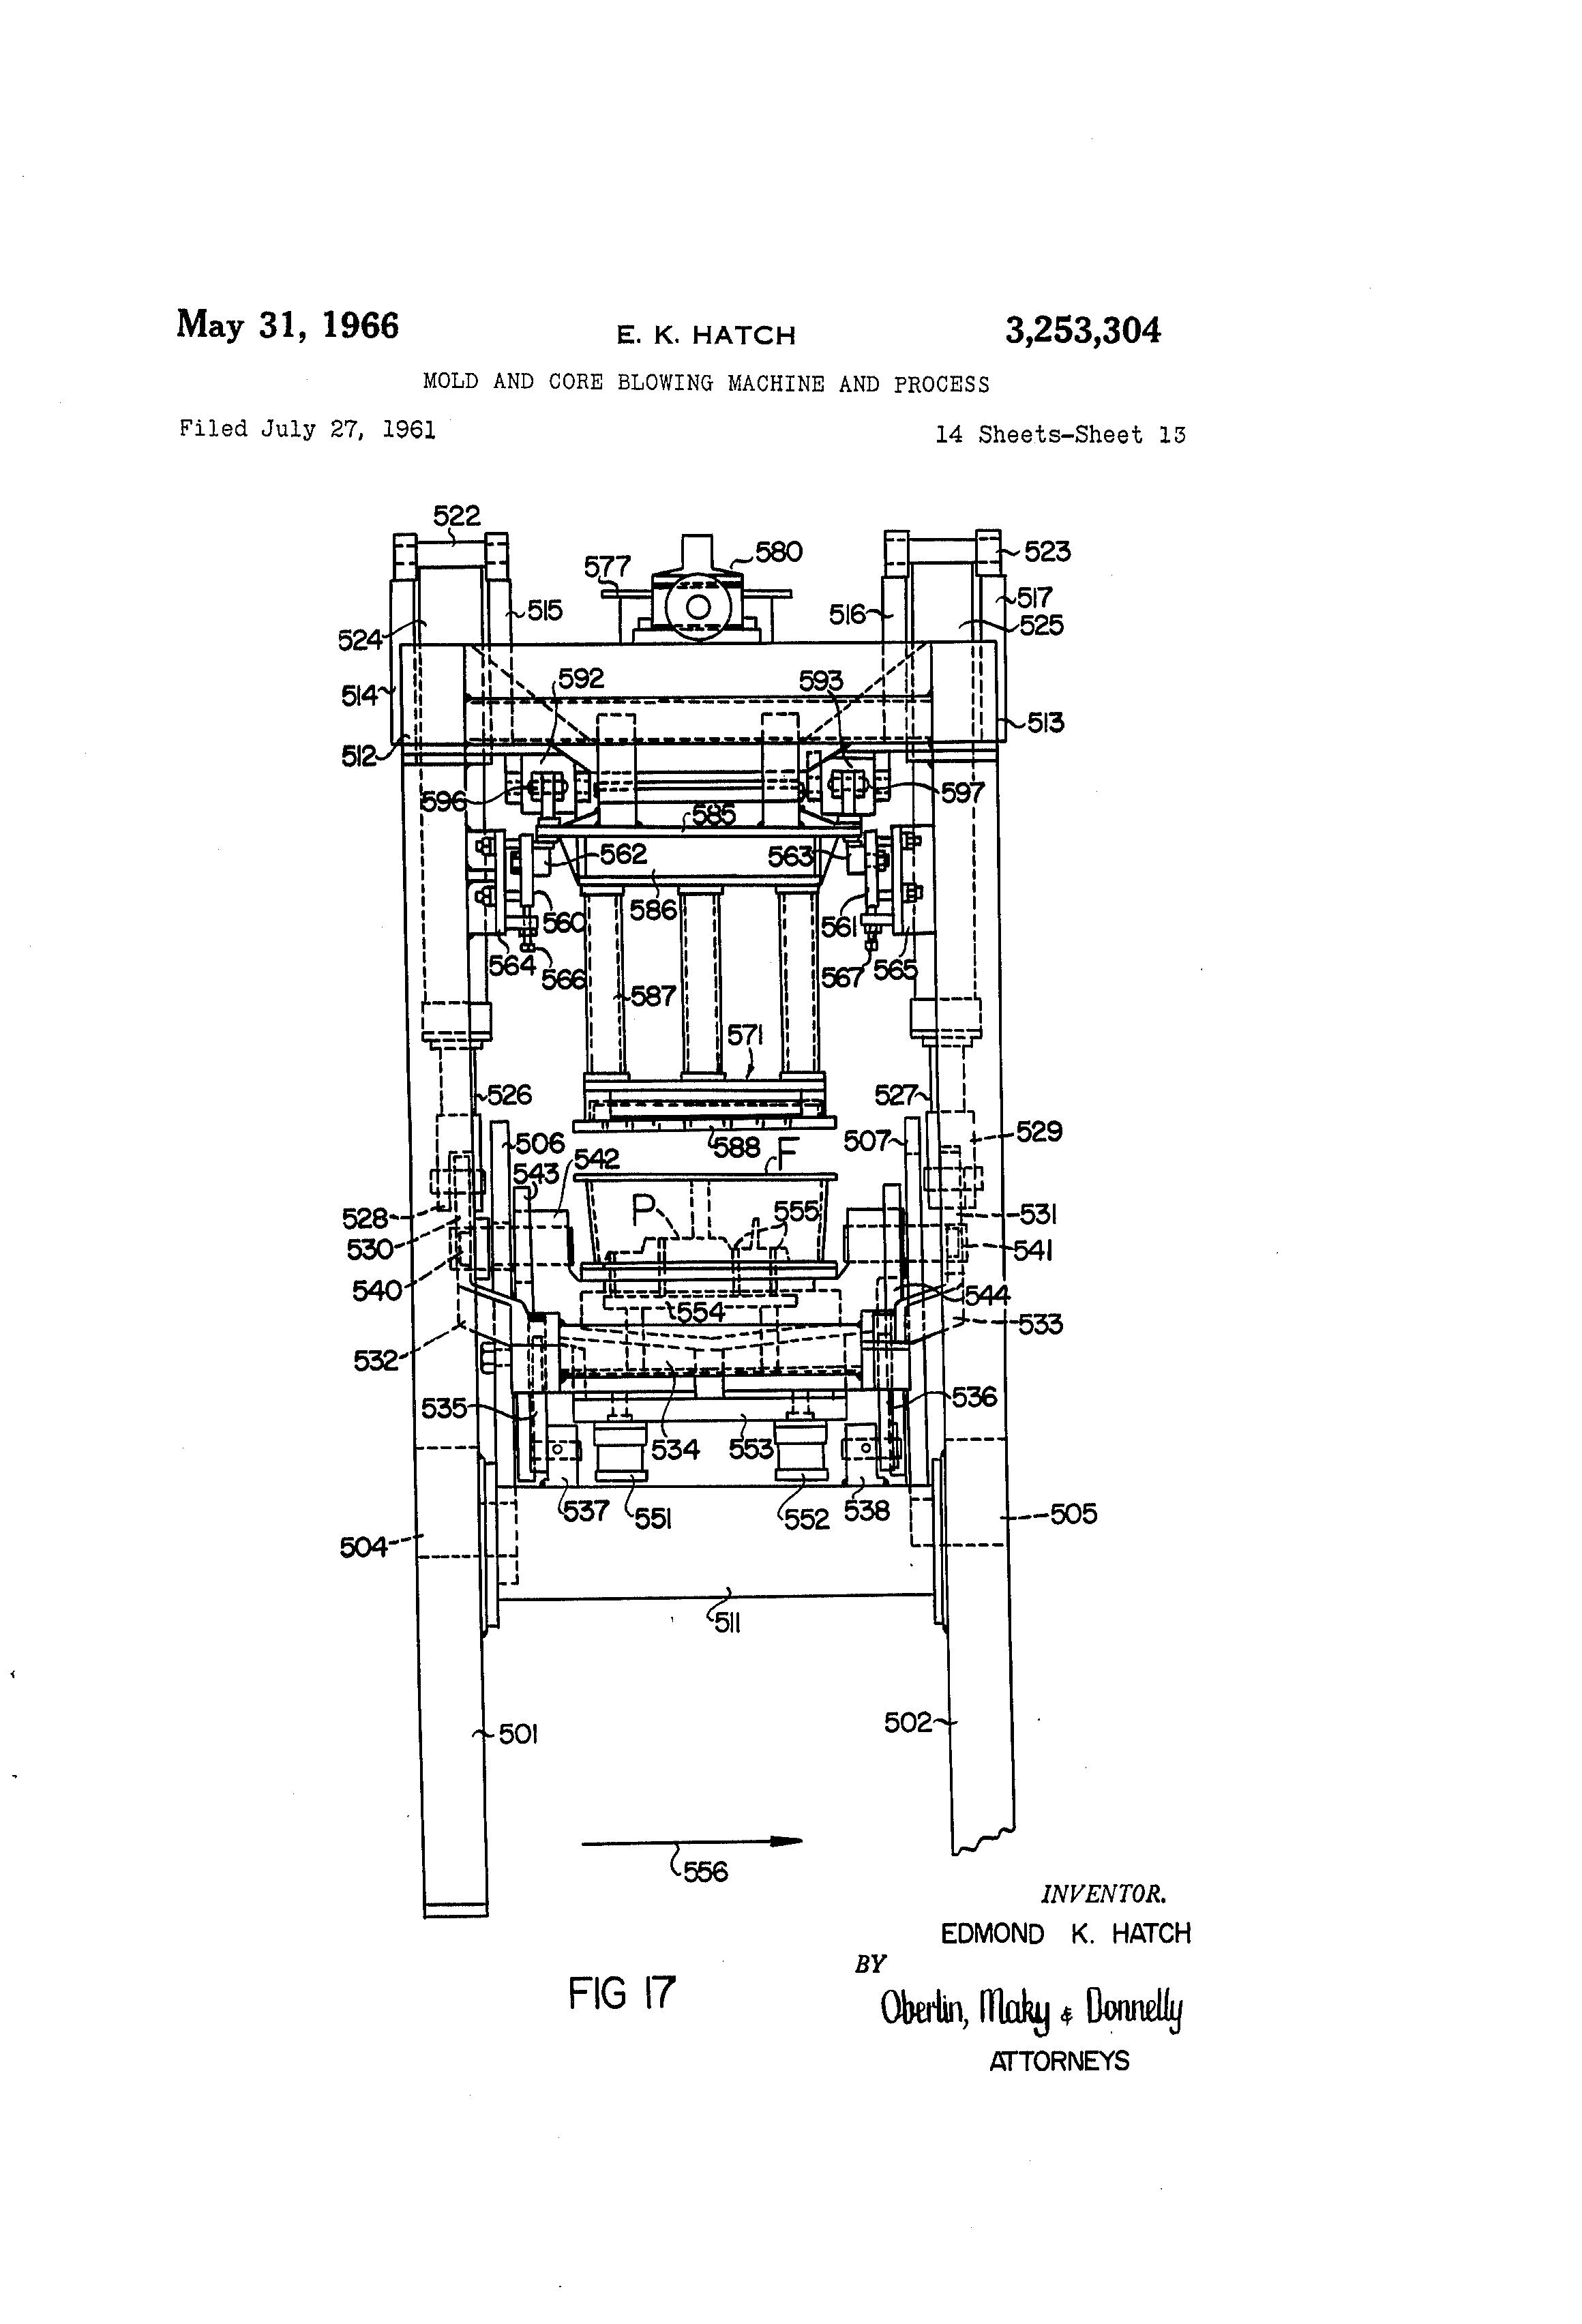 US3253304 12 patent us3253304 mold and core blowing machine and process  at bayanpartner.co